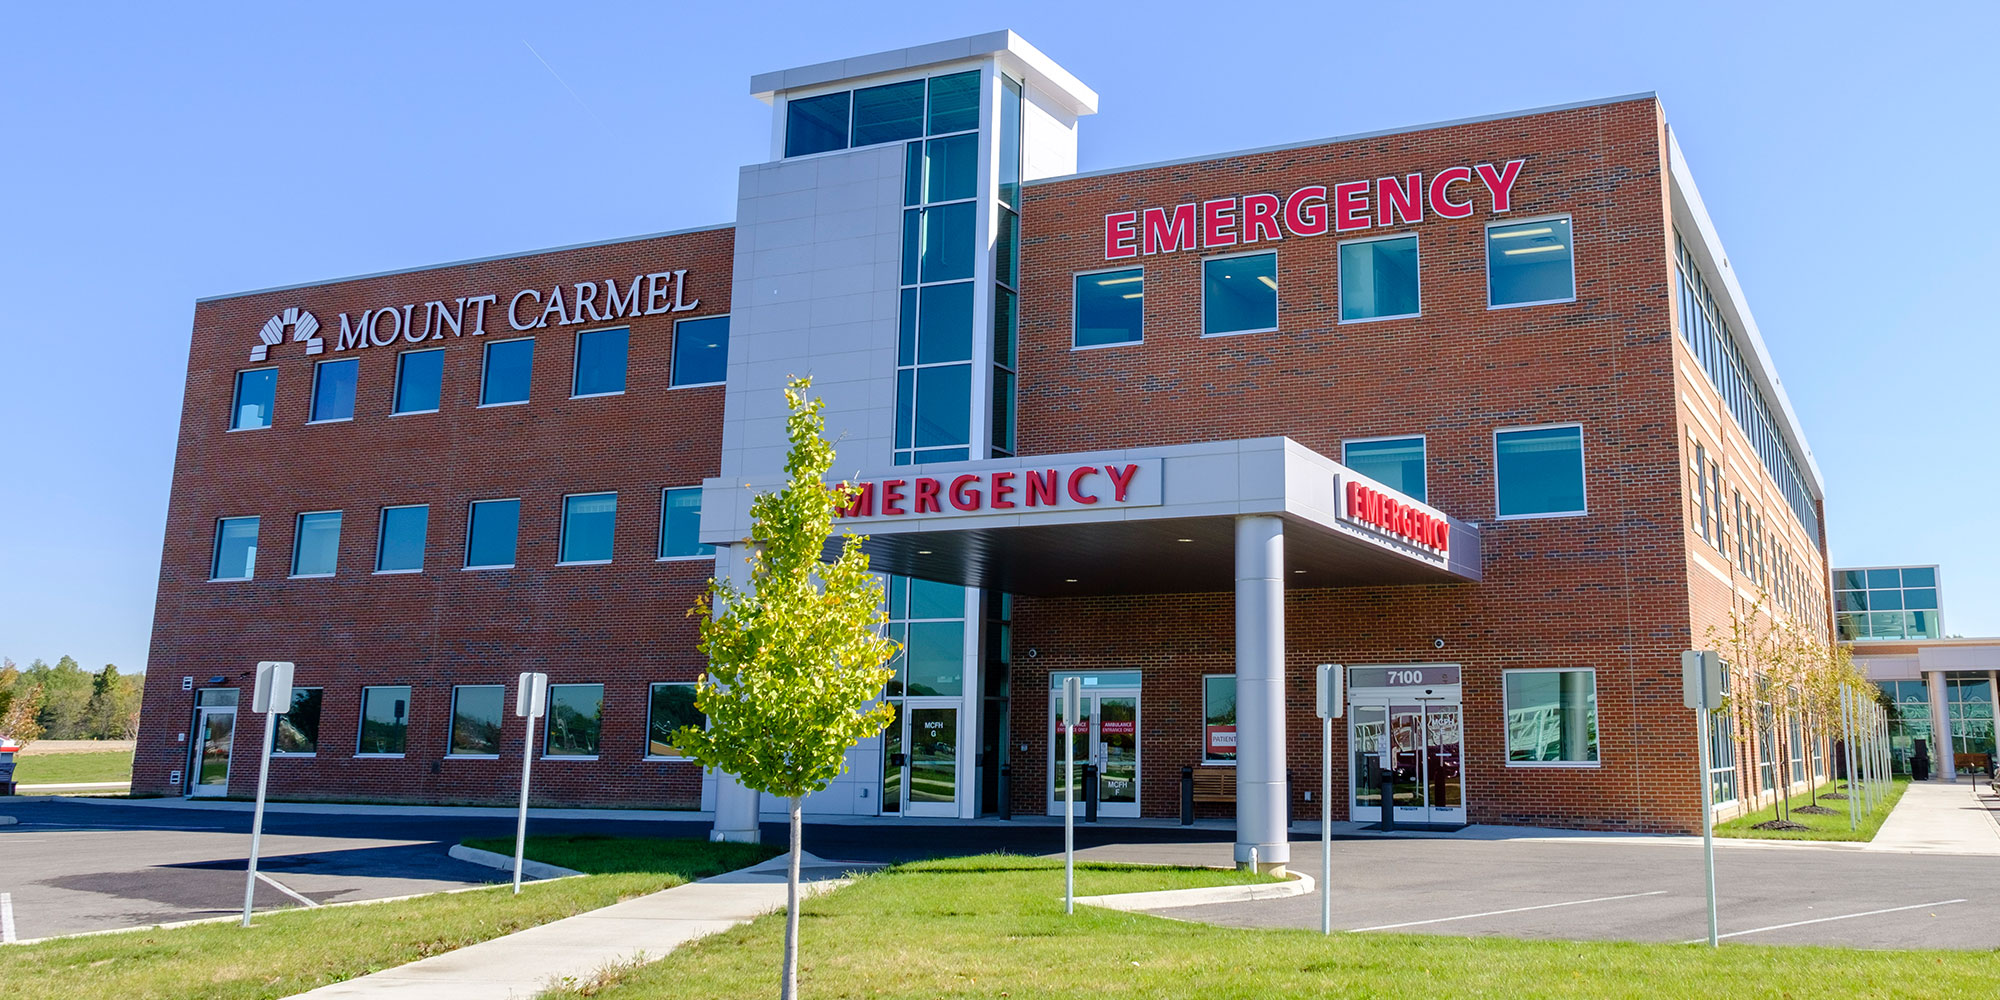 Mount Carmel Health Mount Carmel Lewis Center Anticoagulation Cardiovascular Imaging Family Medicine Fitness Center Imaging Center Lab Services Occupational Health Rehab Services Specialists Women S Health 7100 Graphics Way Lewis